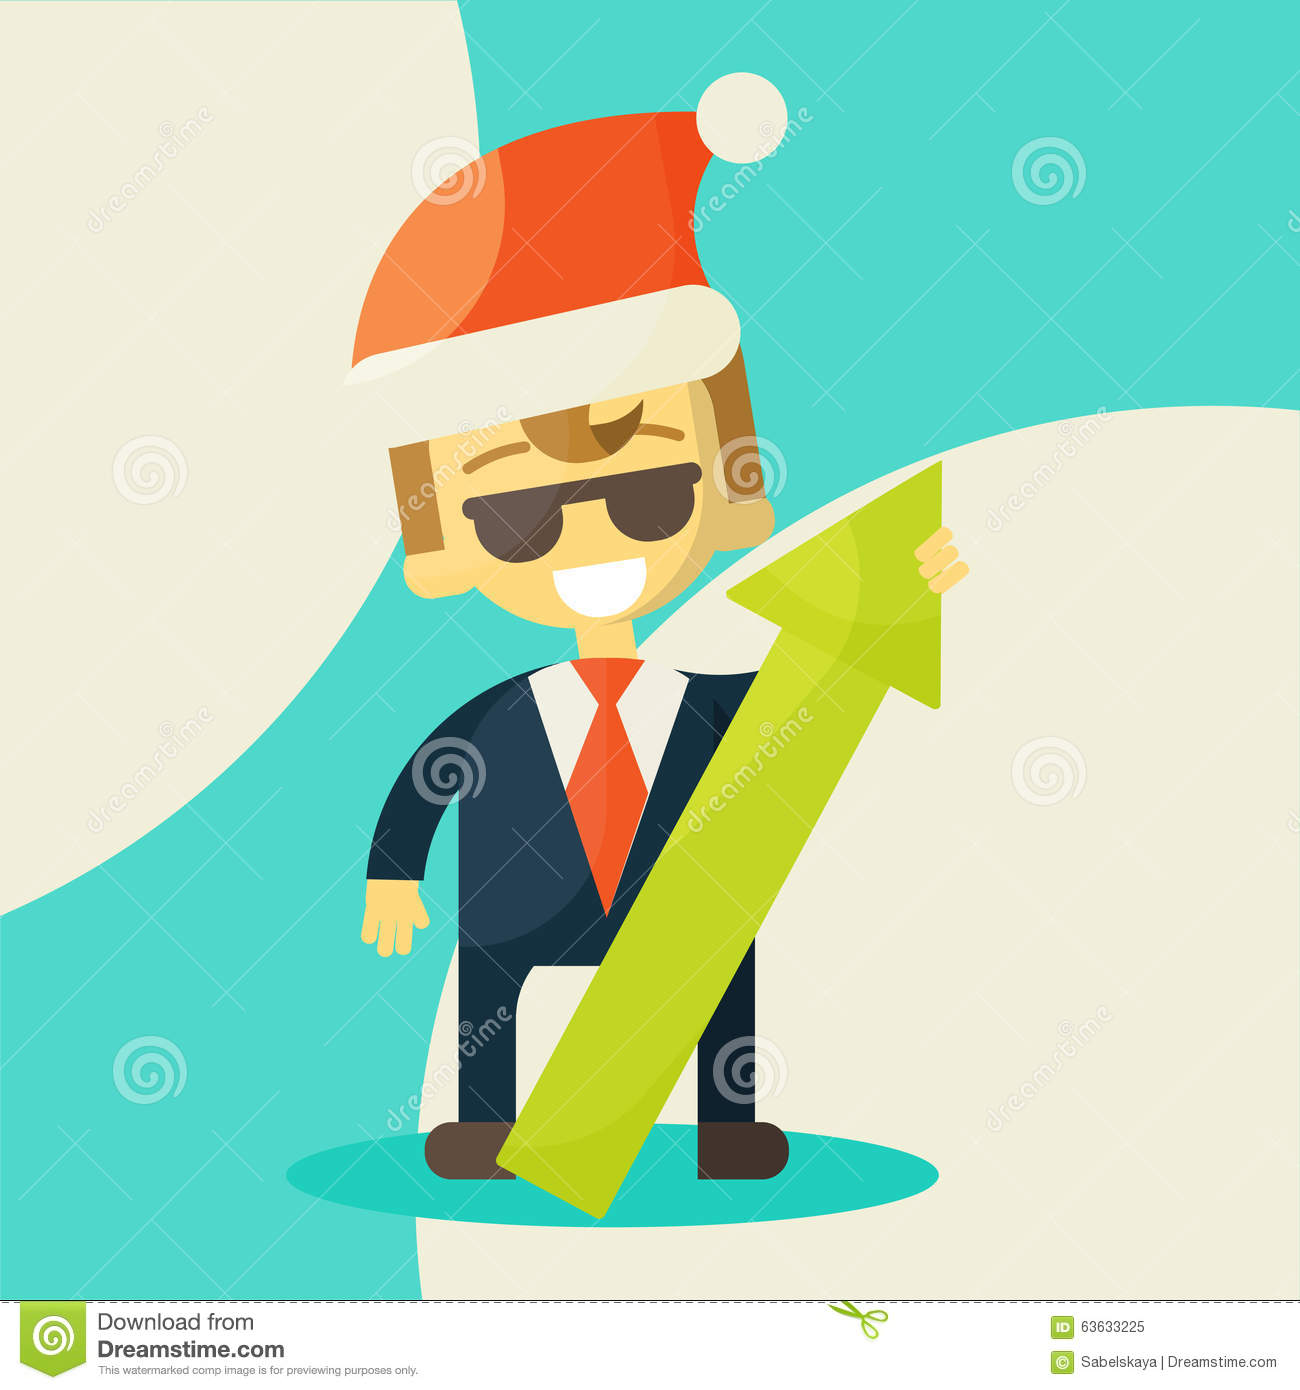 merry christmas and happy new year for your colleagues and partners christmas miracle success in work illustration eps 10